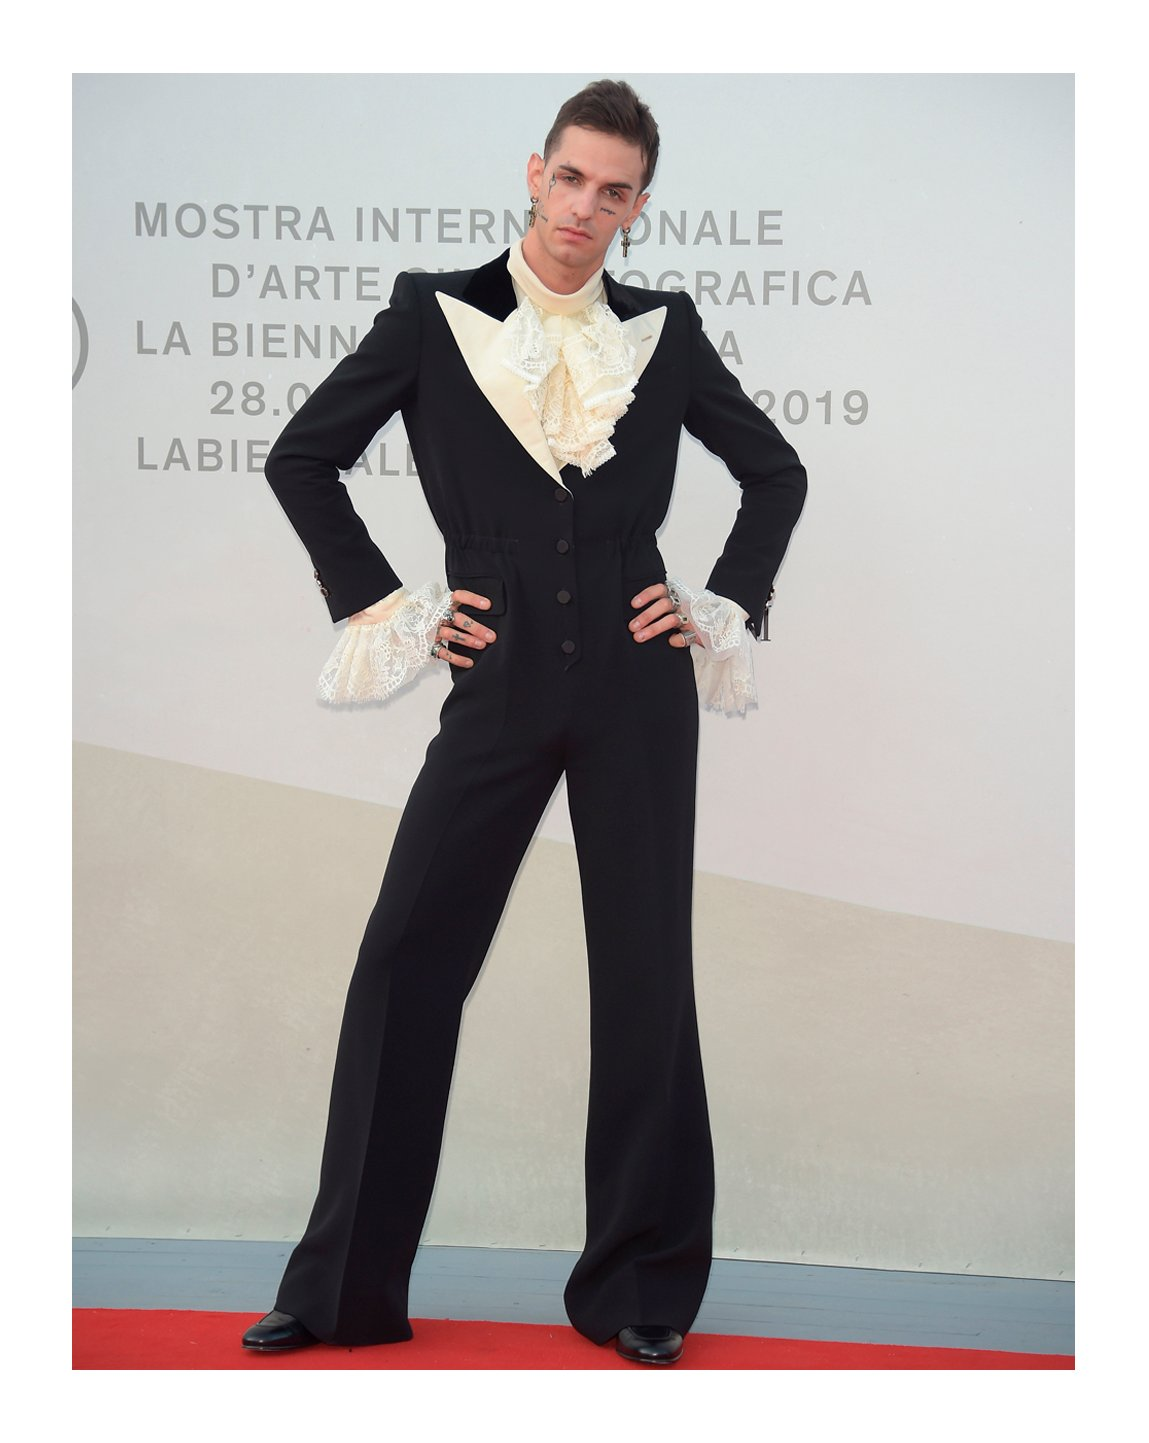 To the screening of 'Happy Birthday' during the 76th Venice Film Festival, singer @AchilleIDOL wore a fine wool and silk tuxedo jumpsuit with a silk organza shirt and leather booties from #GucciFW19 by #AlessandroMichele. #GucciJewelry #BiennaleCinema2019 #Venezia76 @la_Biennale https://t.co/hsQ05RVZ62